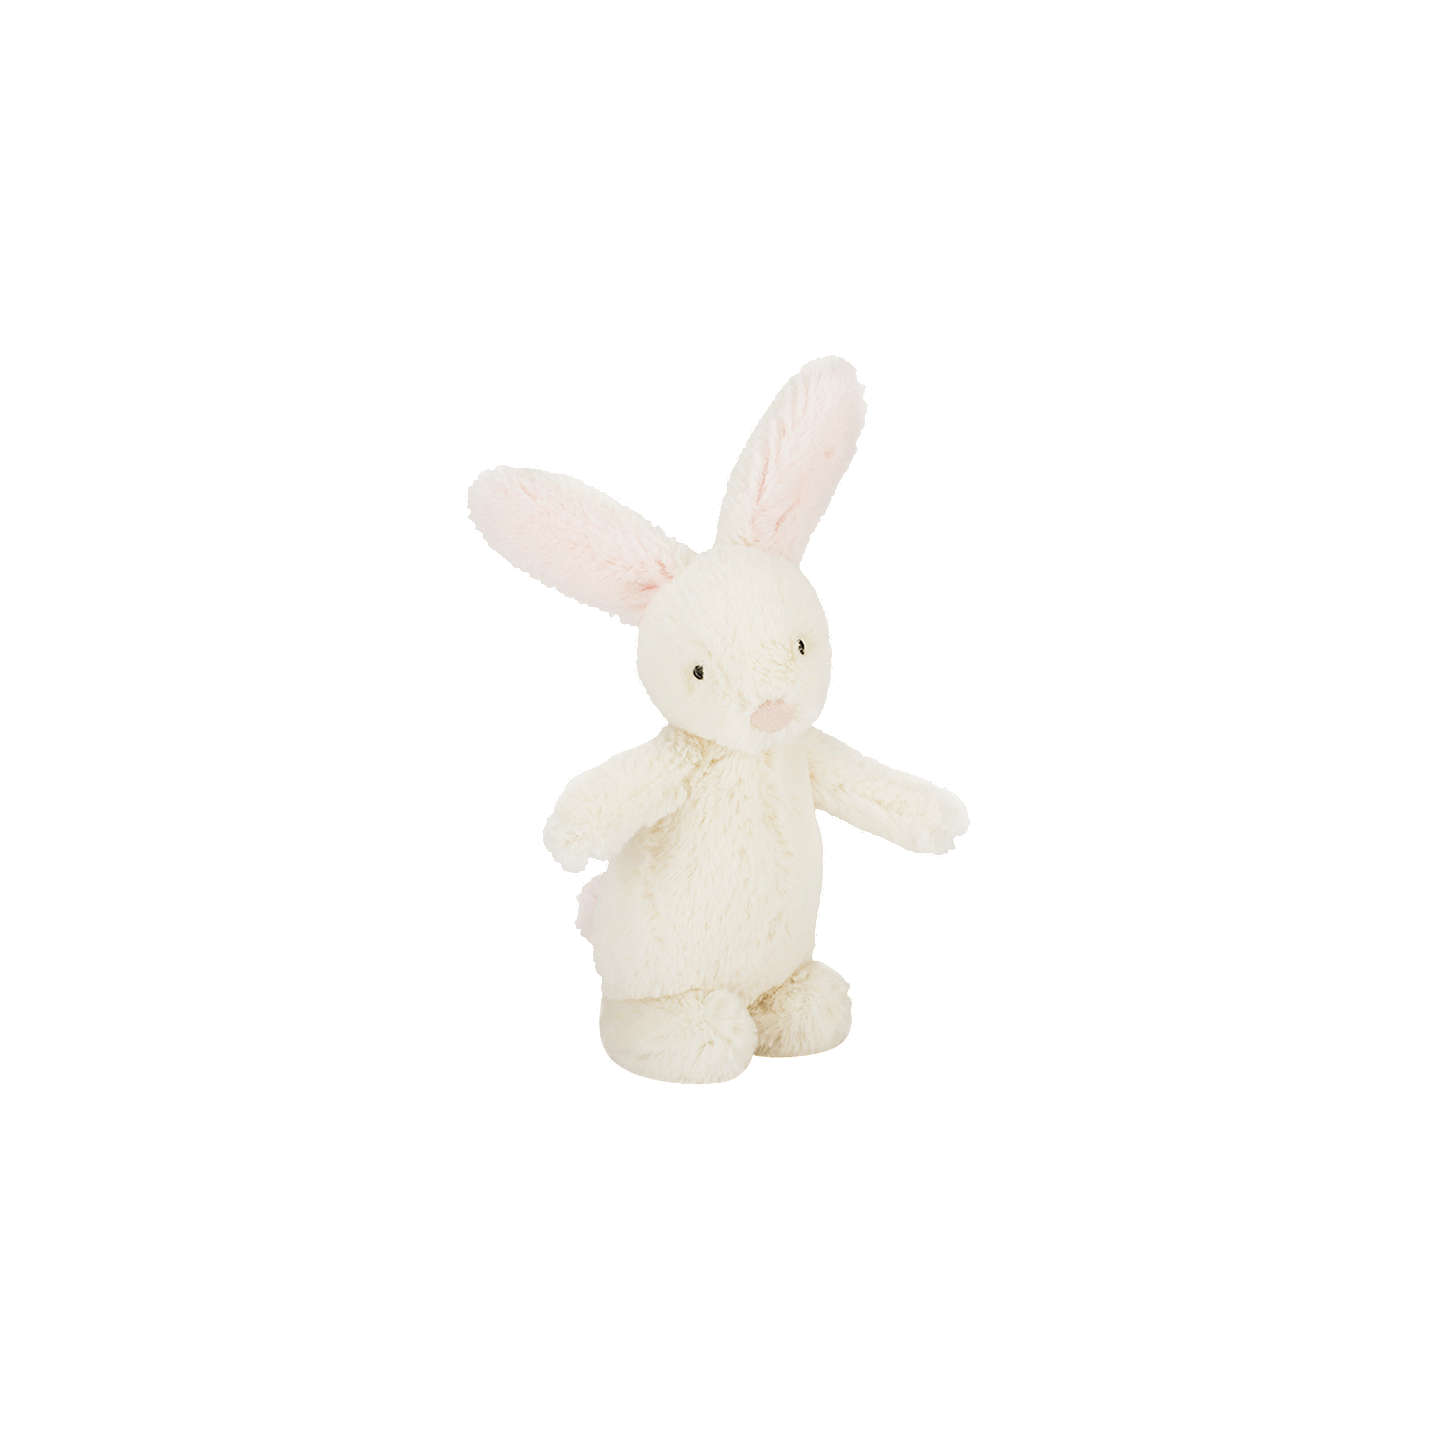 BuyJellycat Bobtail Bunny Rattle, One Size, Cream/Pink Online at johnlewis.com